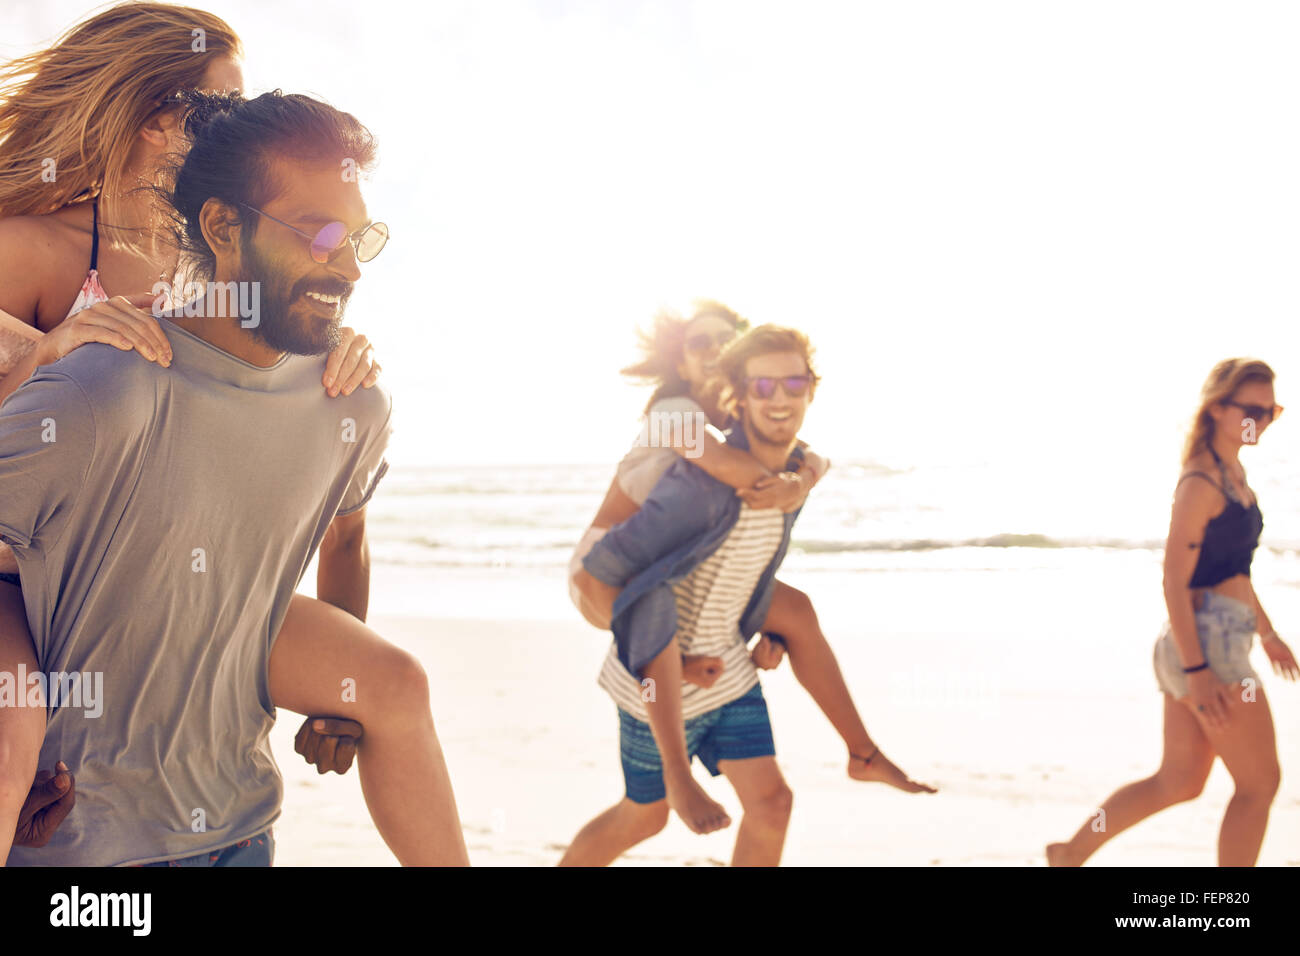 Group of friends having fun on the beach, Young men piggybacking women on the sea shore. Mixed race young people - Stock Image